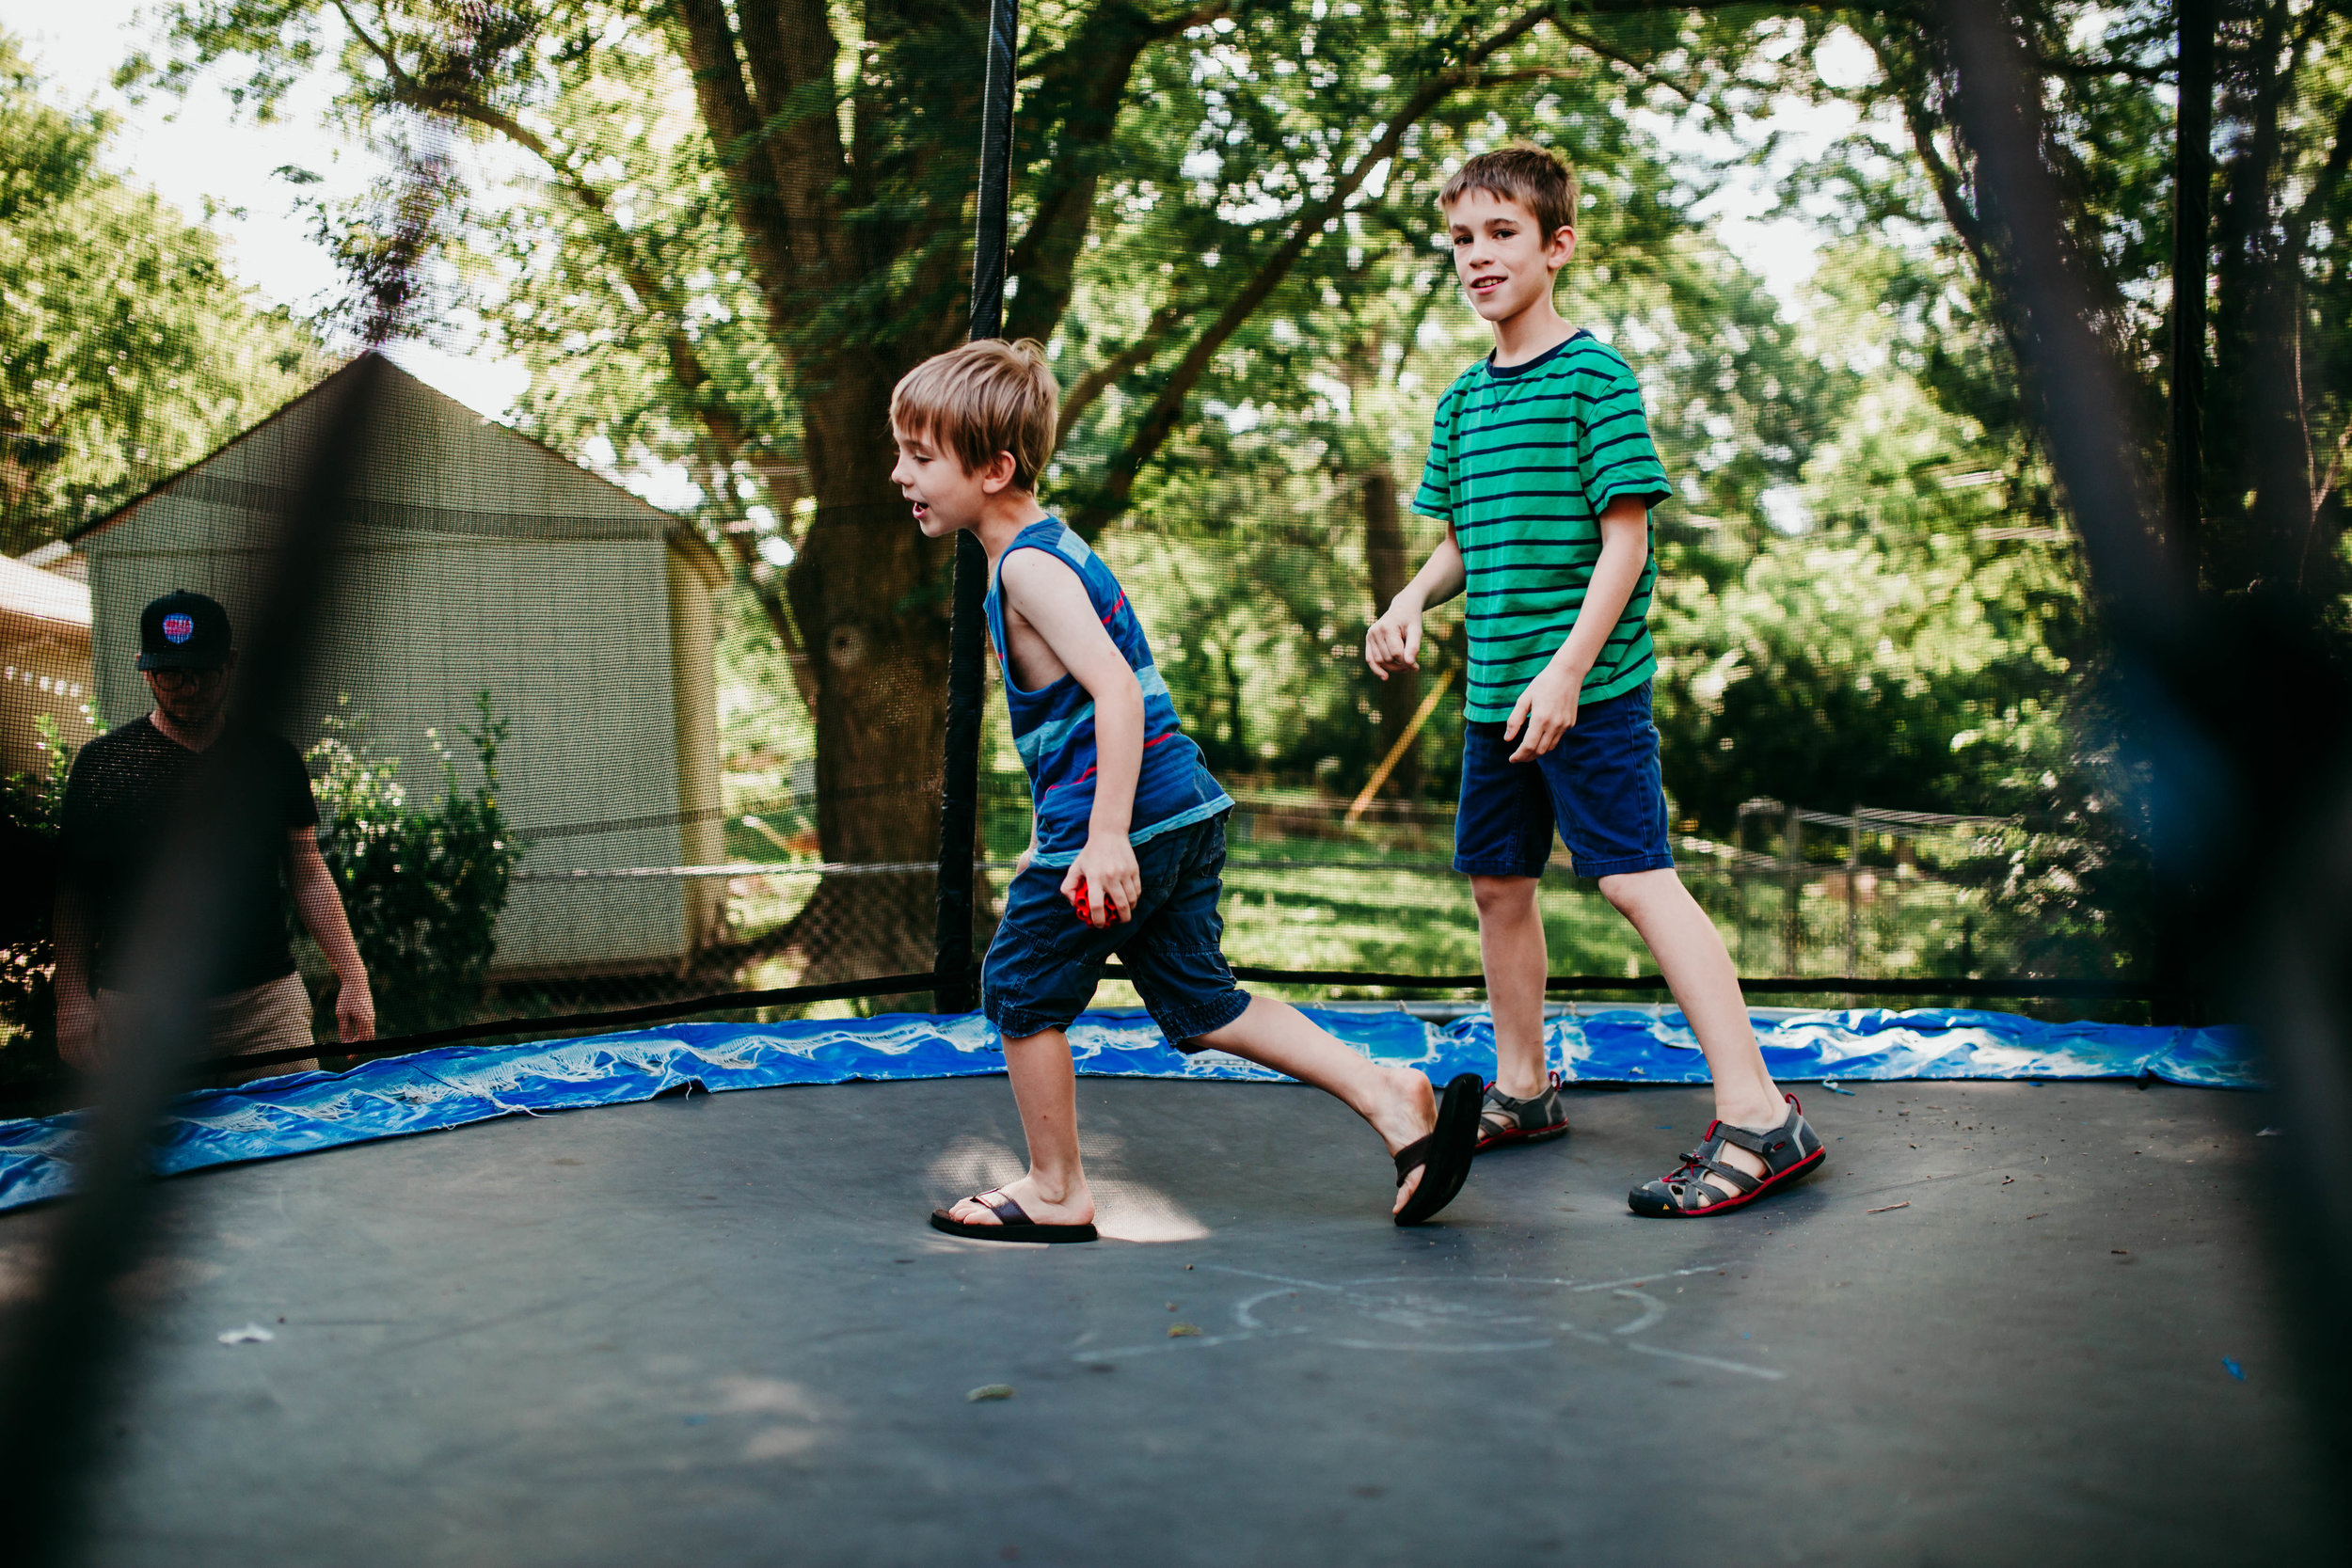 The two oldest sons running on the trampoline.   The Carter Family : Summer in the Backyard | Hannahill Photography | Kansas City, MO | Family photography lifestyle photographer | Wedding photographer Durham North Carolina Raleigh | Birth photographer Documentary